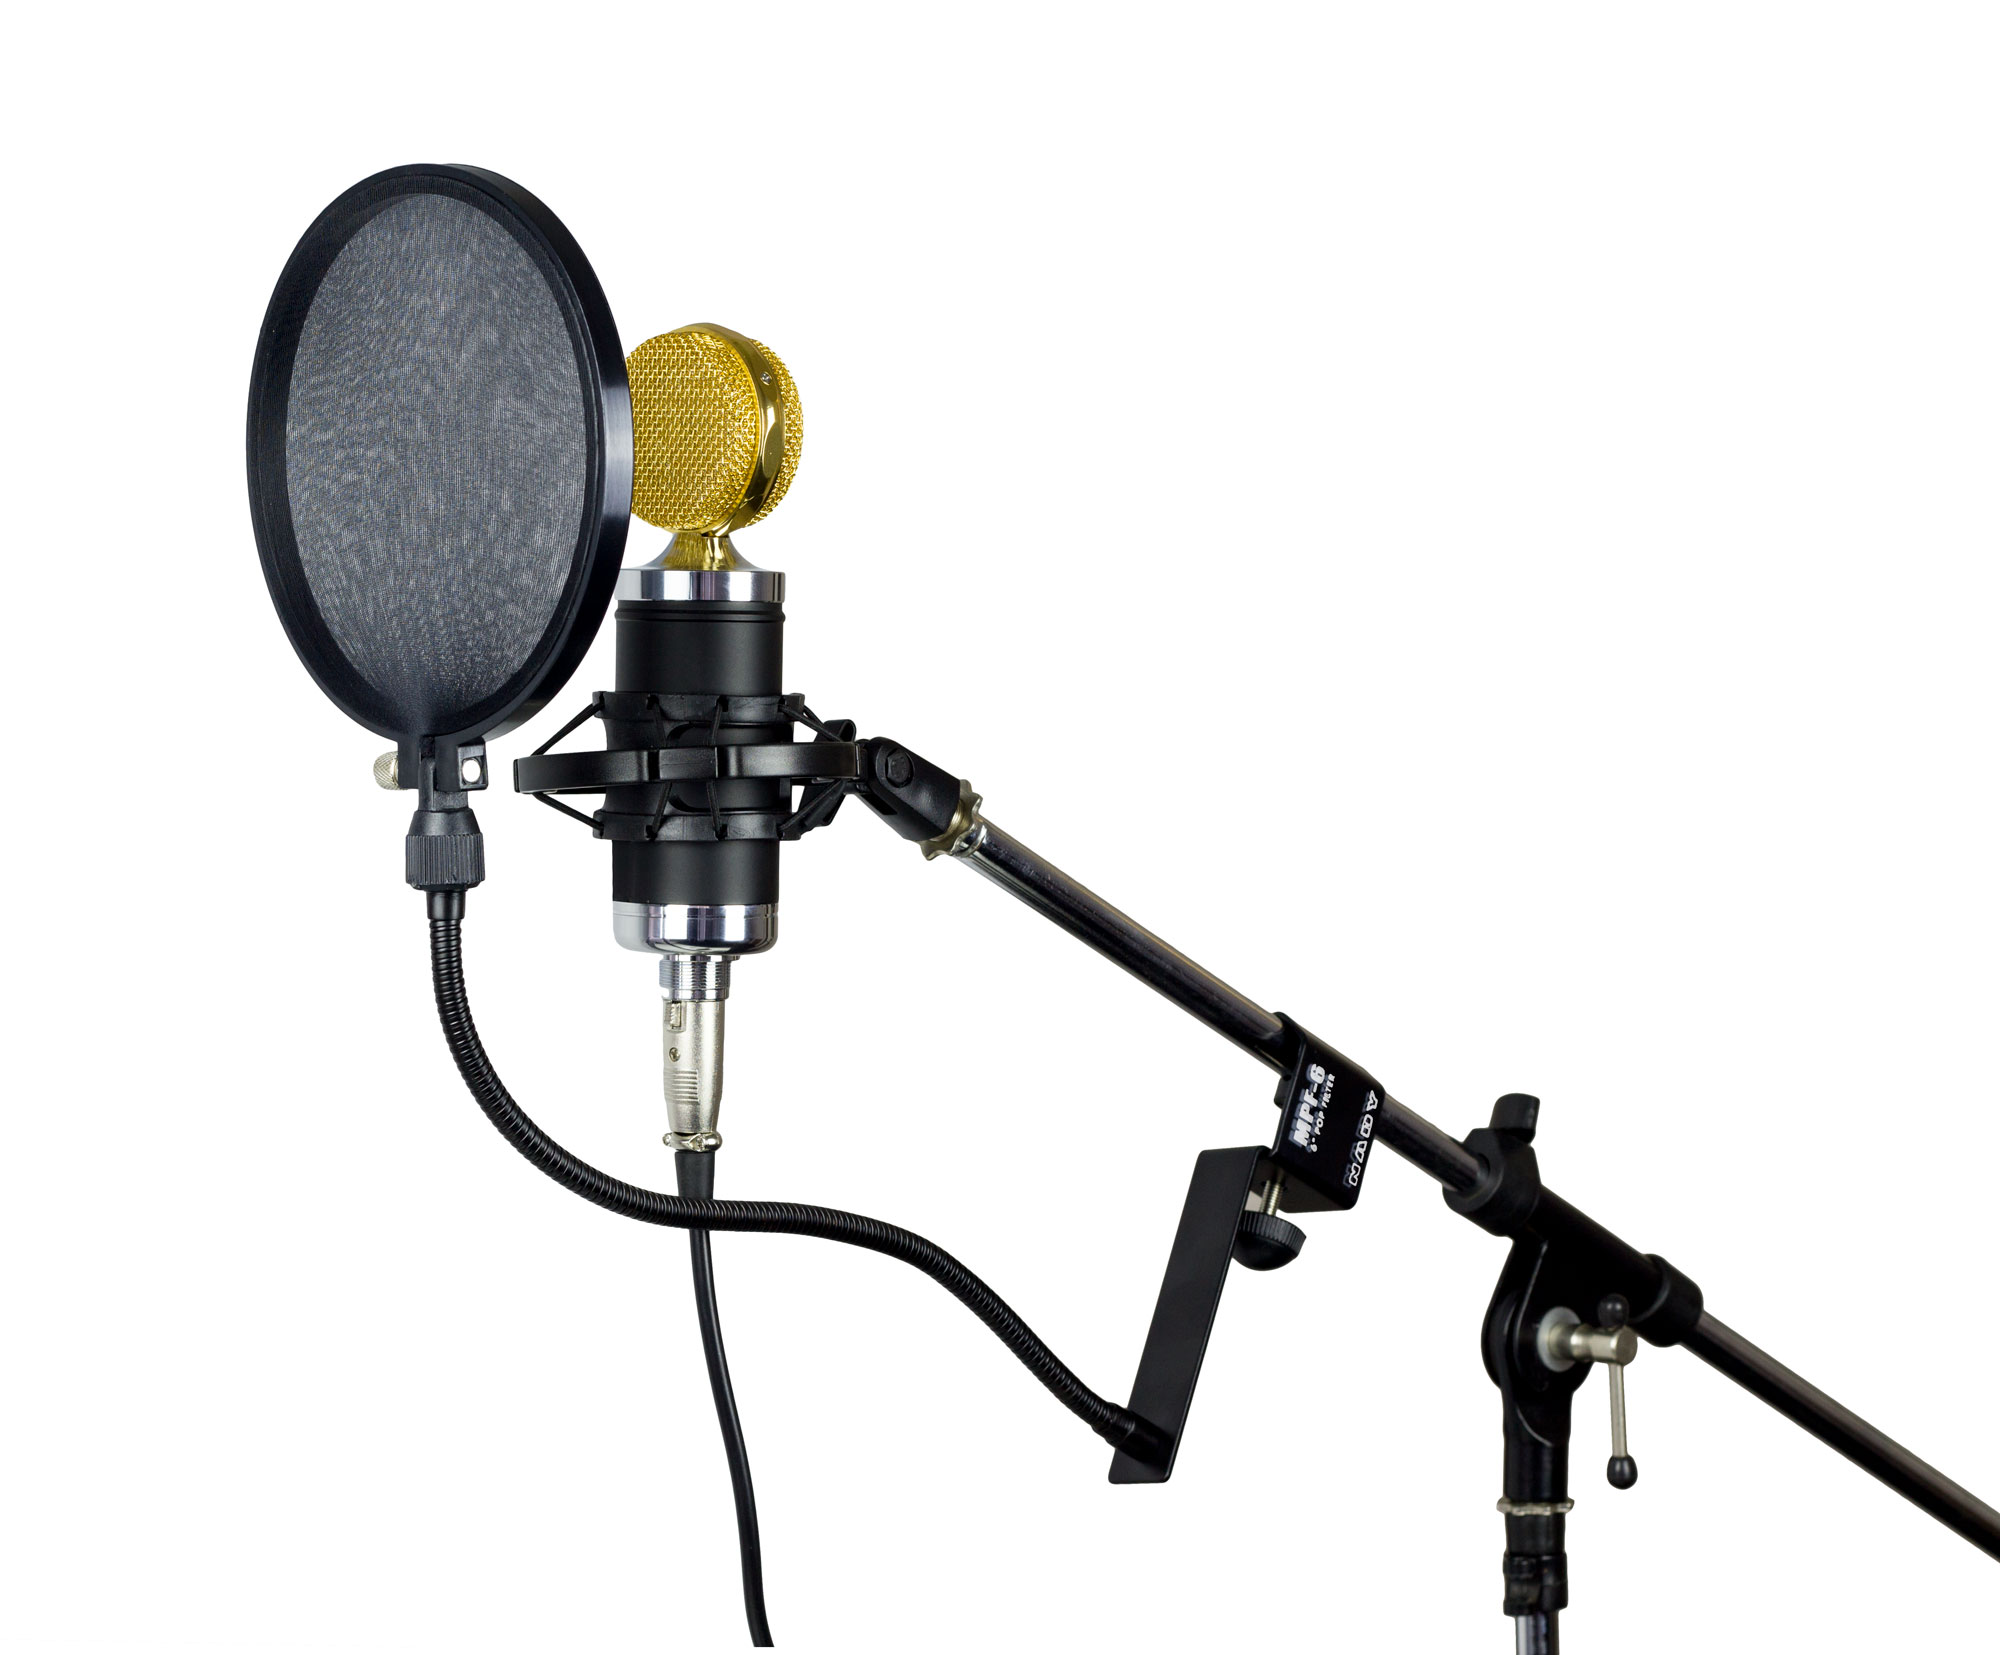 mpf 6 spf 1 microphone pop filter with boom and stand clamp nady systems inc. Black Bedroom Furniture Sets. Home Design Ideas